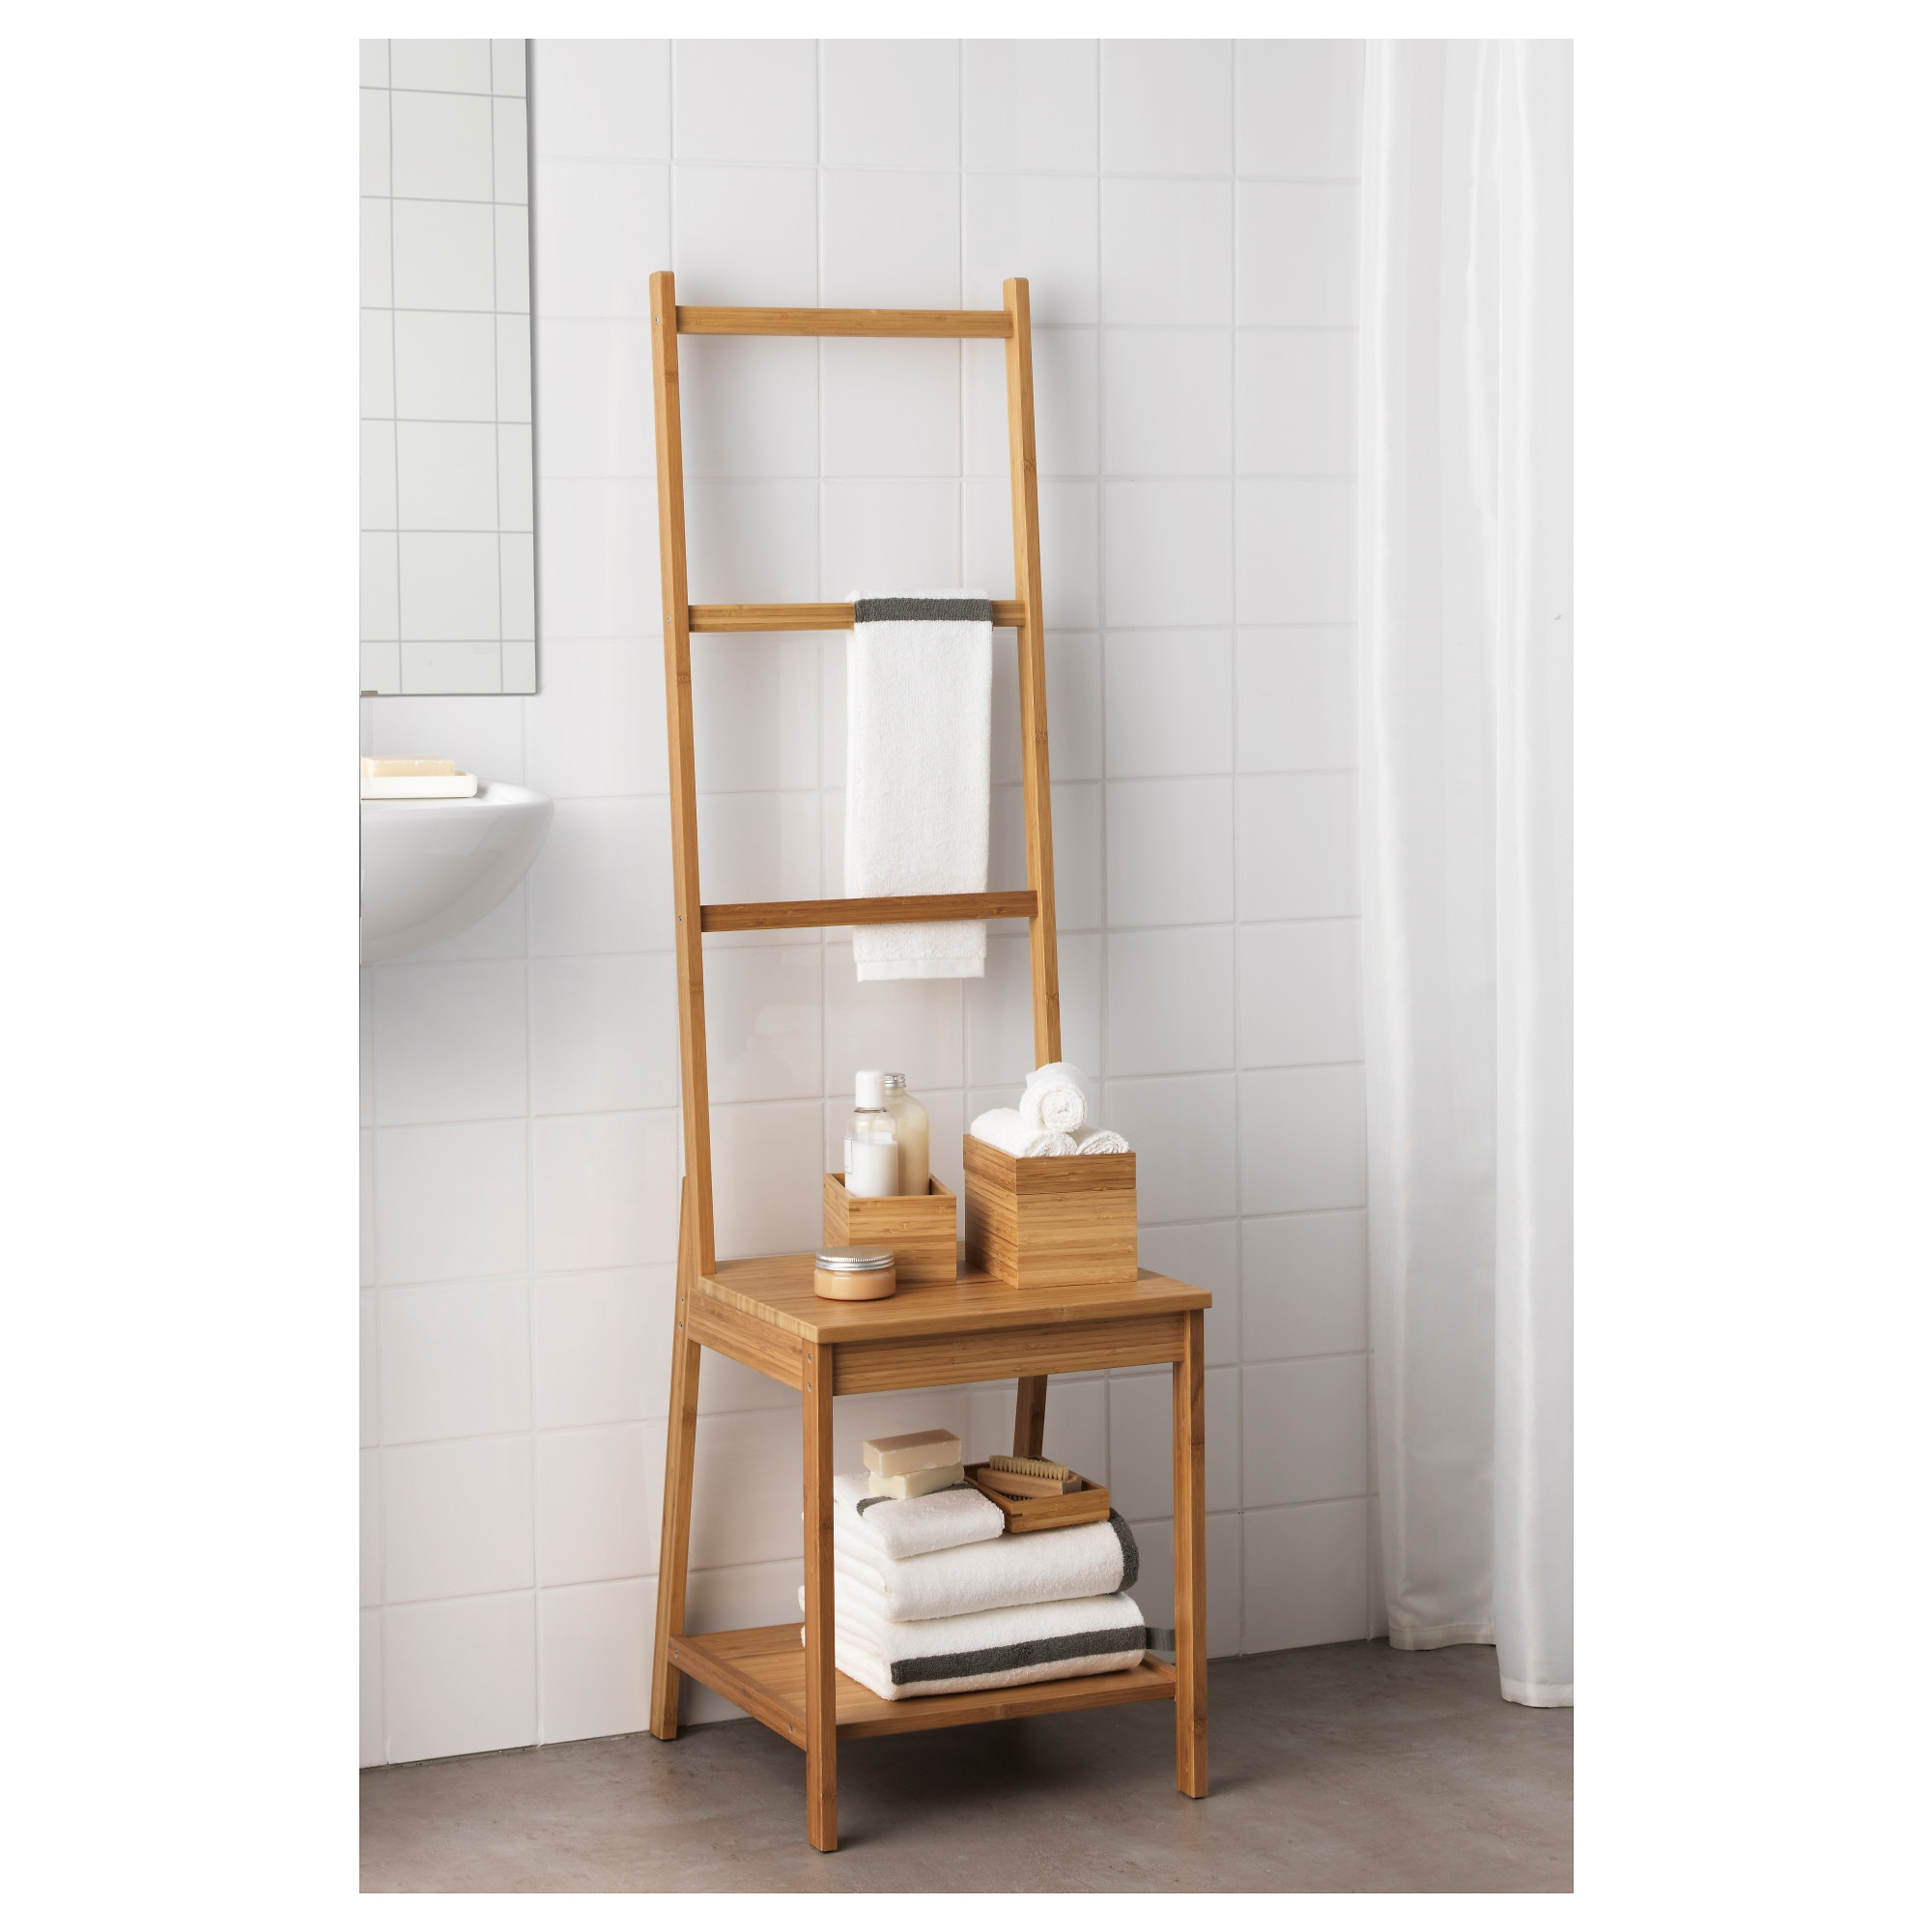 Great RÅGRUND Chair With Towel Rack   IKEA